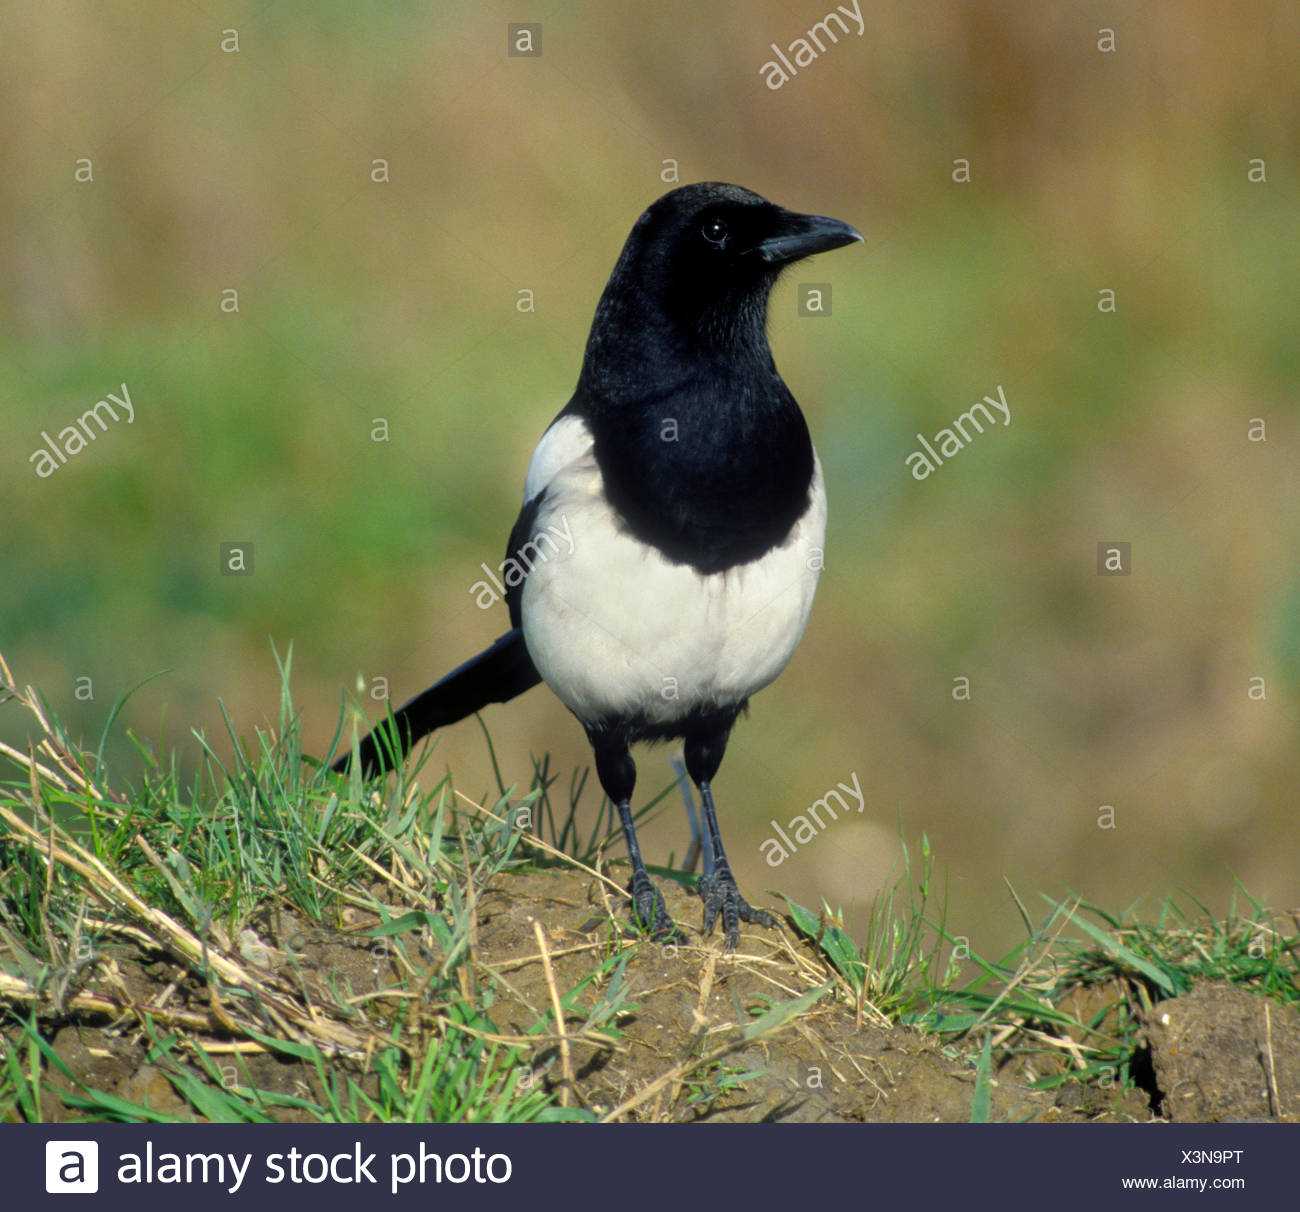 Magpie Pica pica L 45-50cm. Unmistakable black and white, long-tailed bird. Seen in small groups outside breeding season. Varied - Stock Image